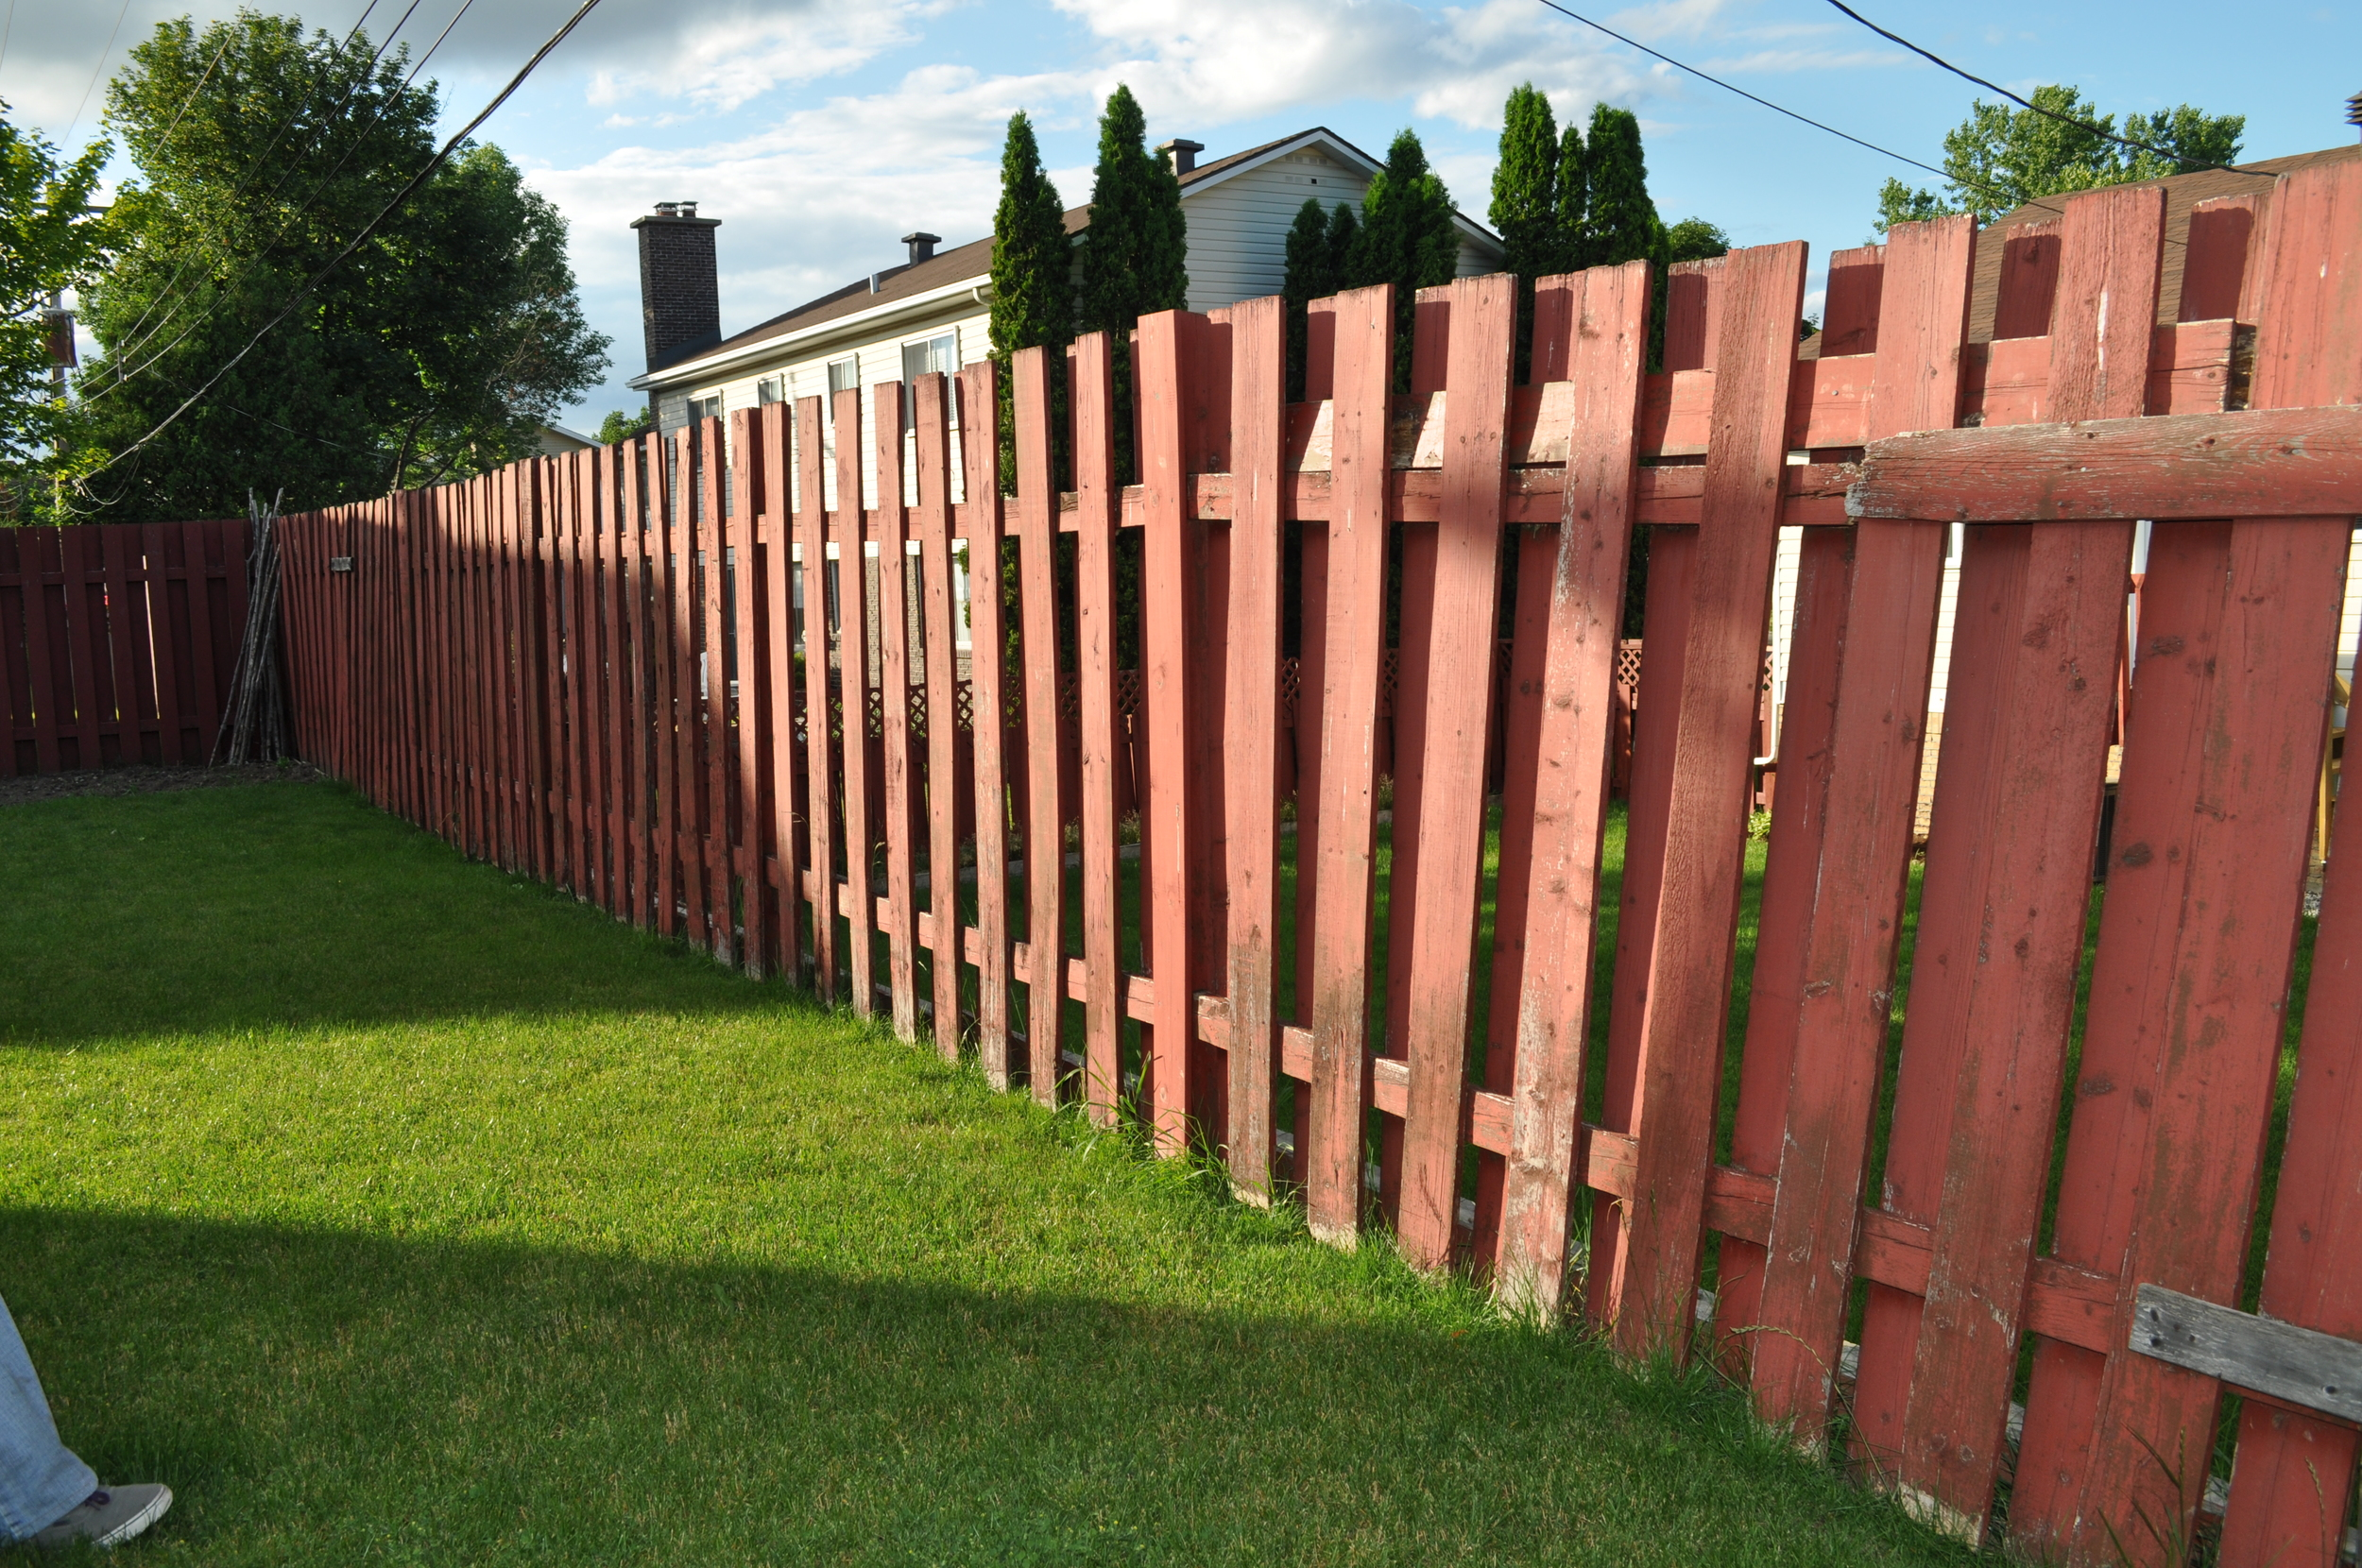 Fence, before reno